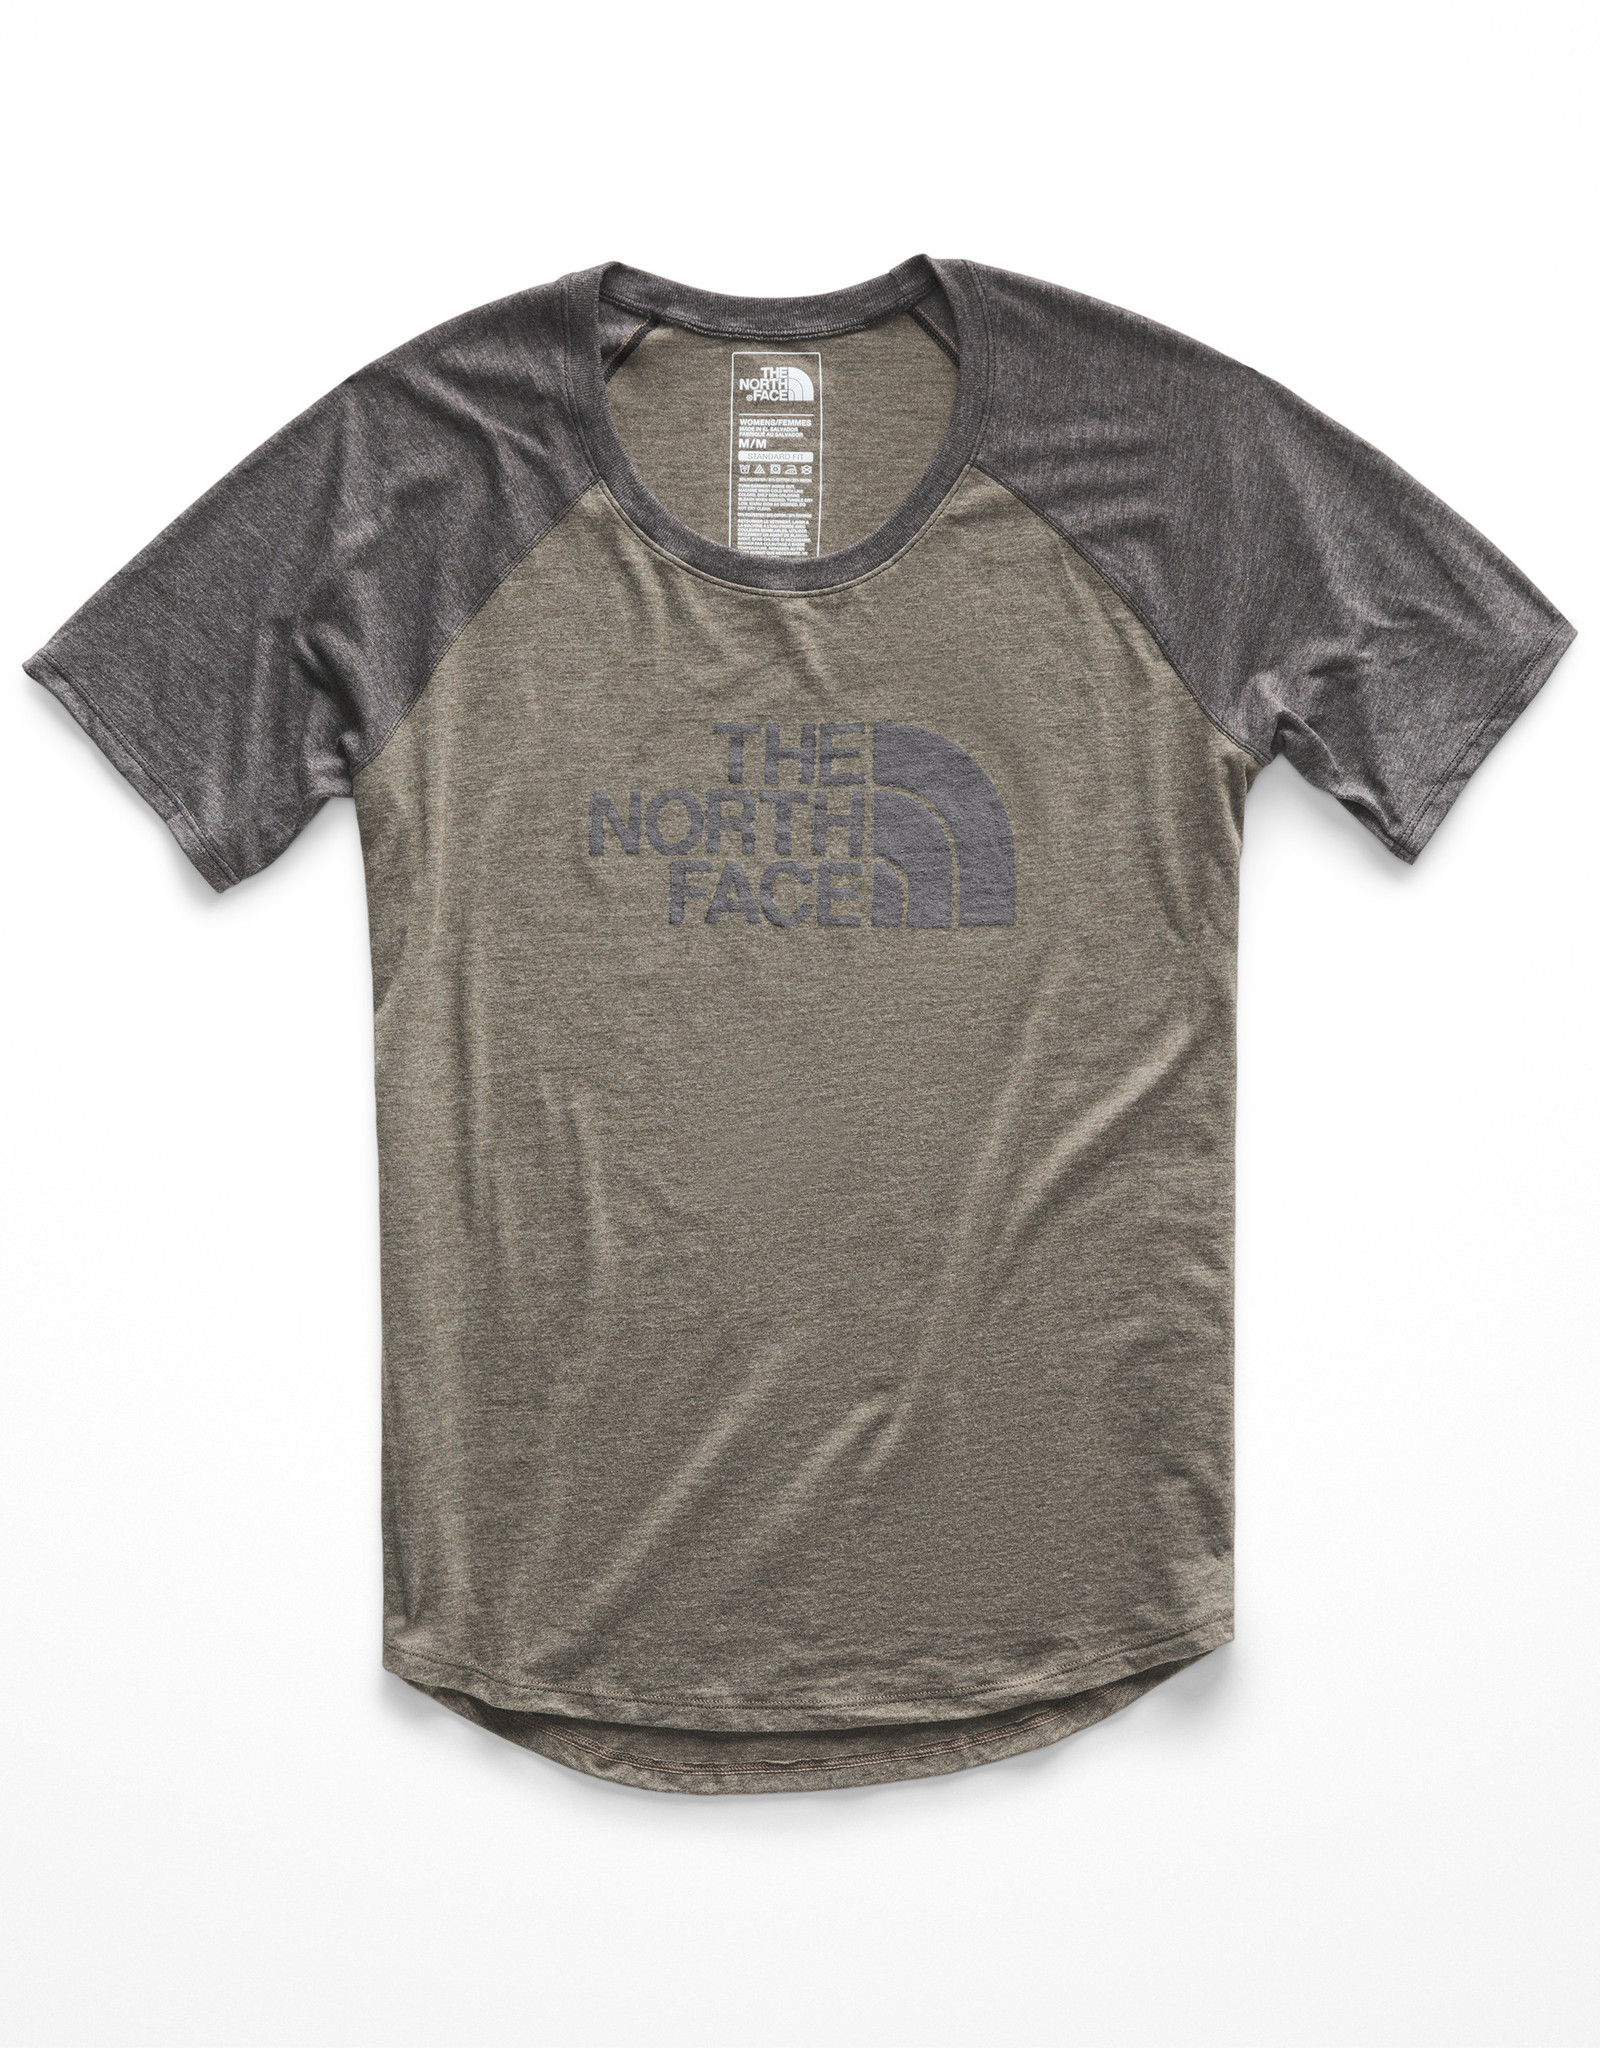 The North Face The North Face Women's S/S Half Dome Graphic Tri-Blend Baseball Tee - S2019